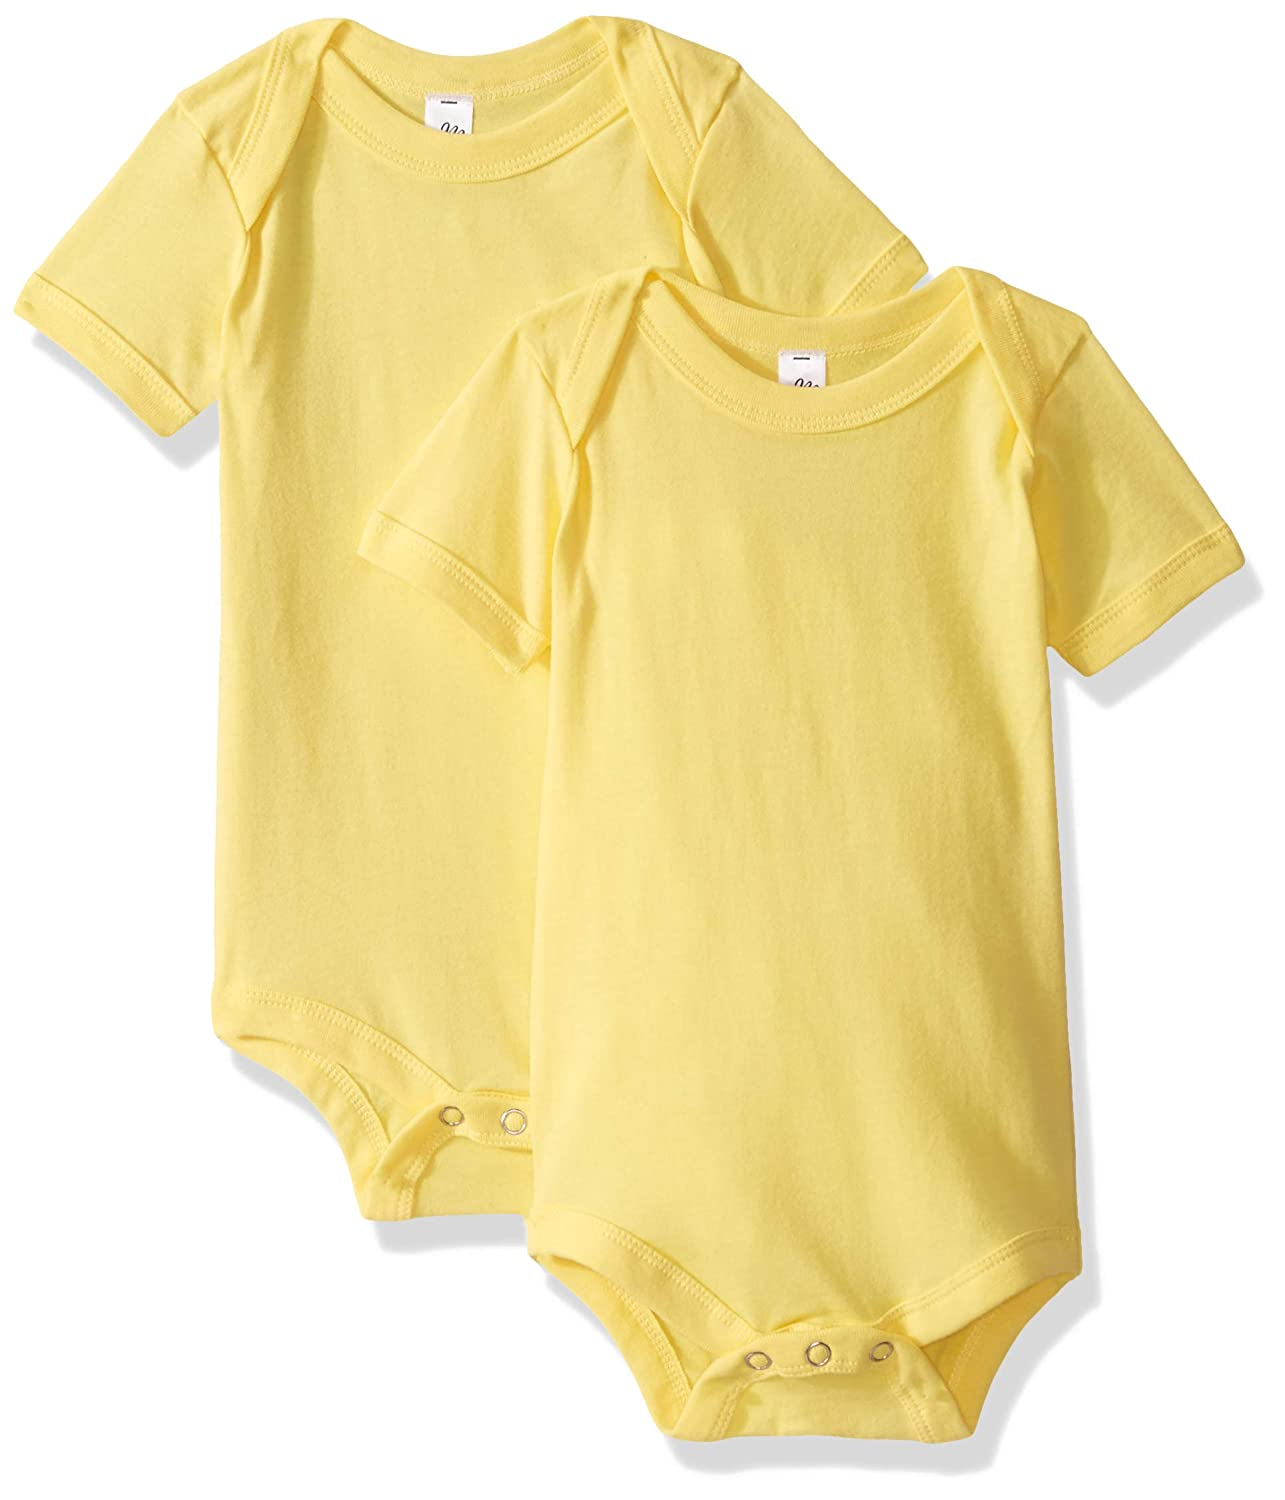 Marky G Apparel Baby Jersey Short-Sleeve One-Piece-2 Pack